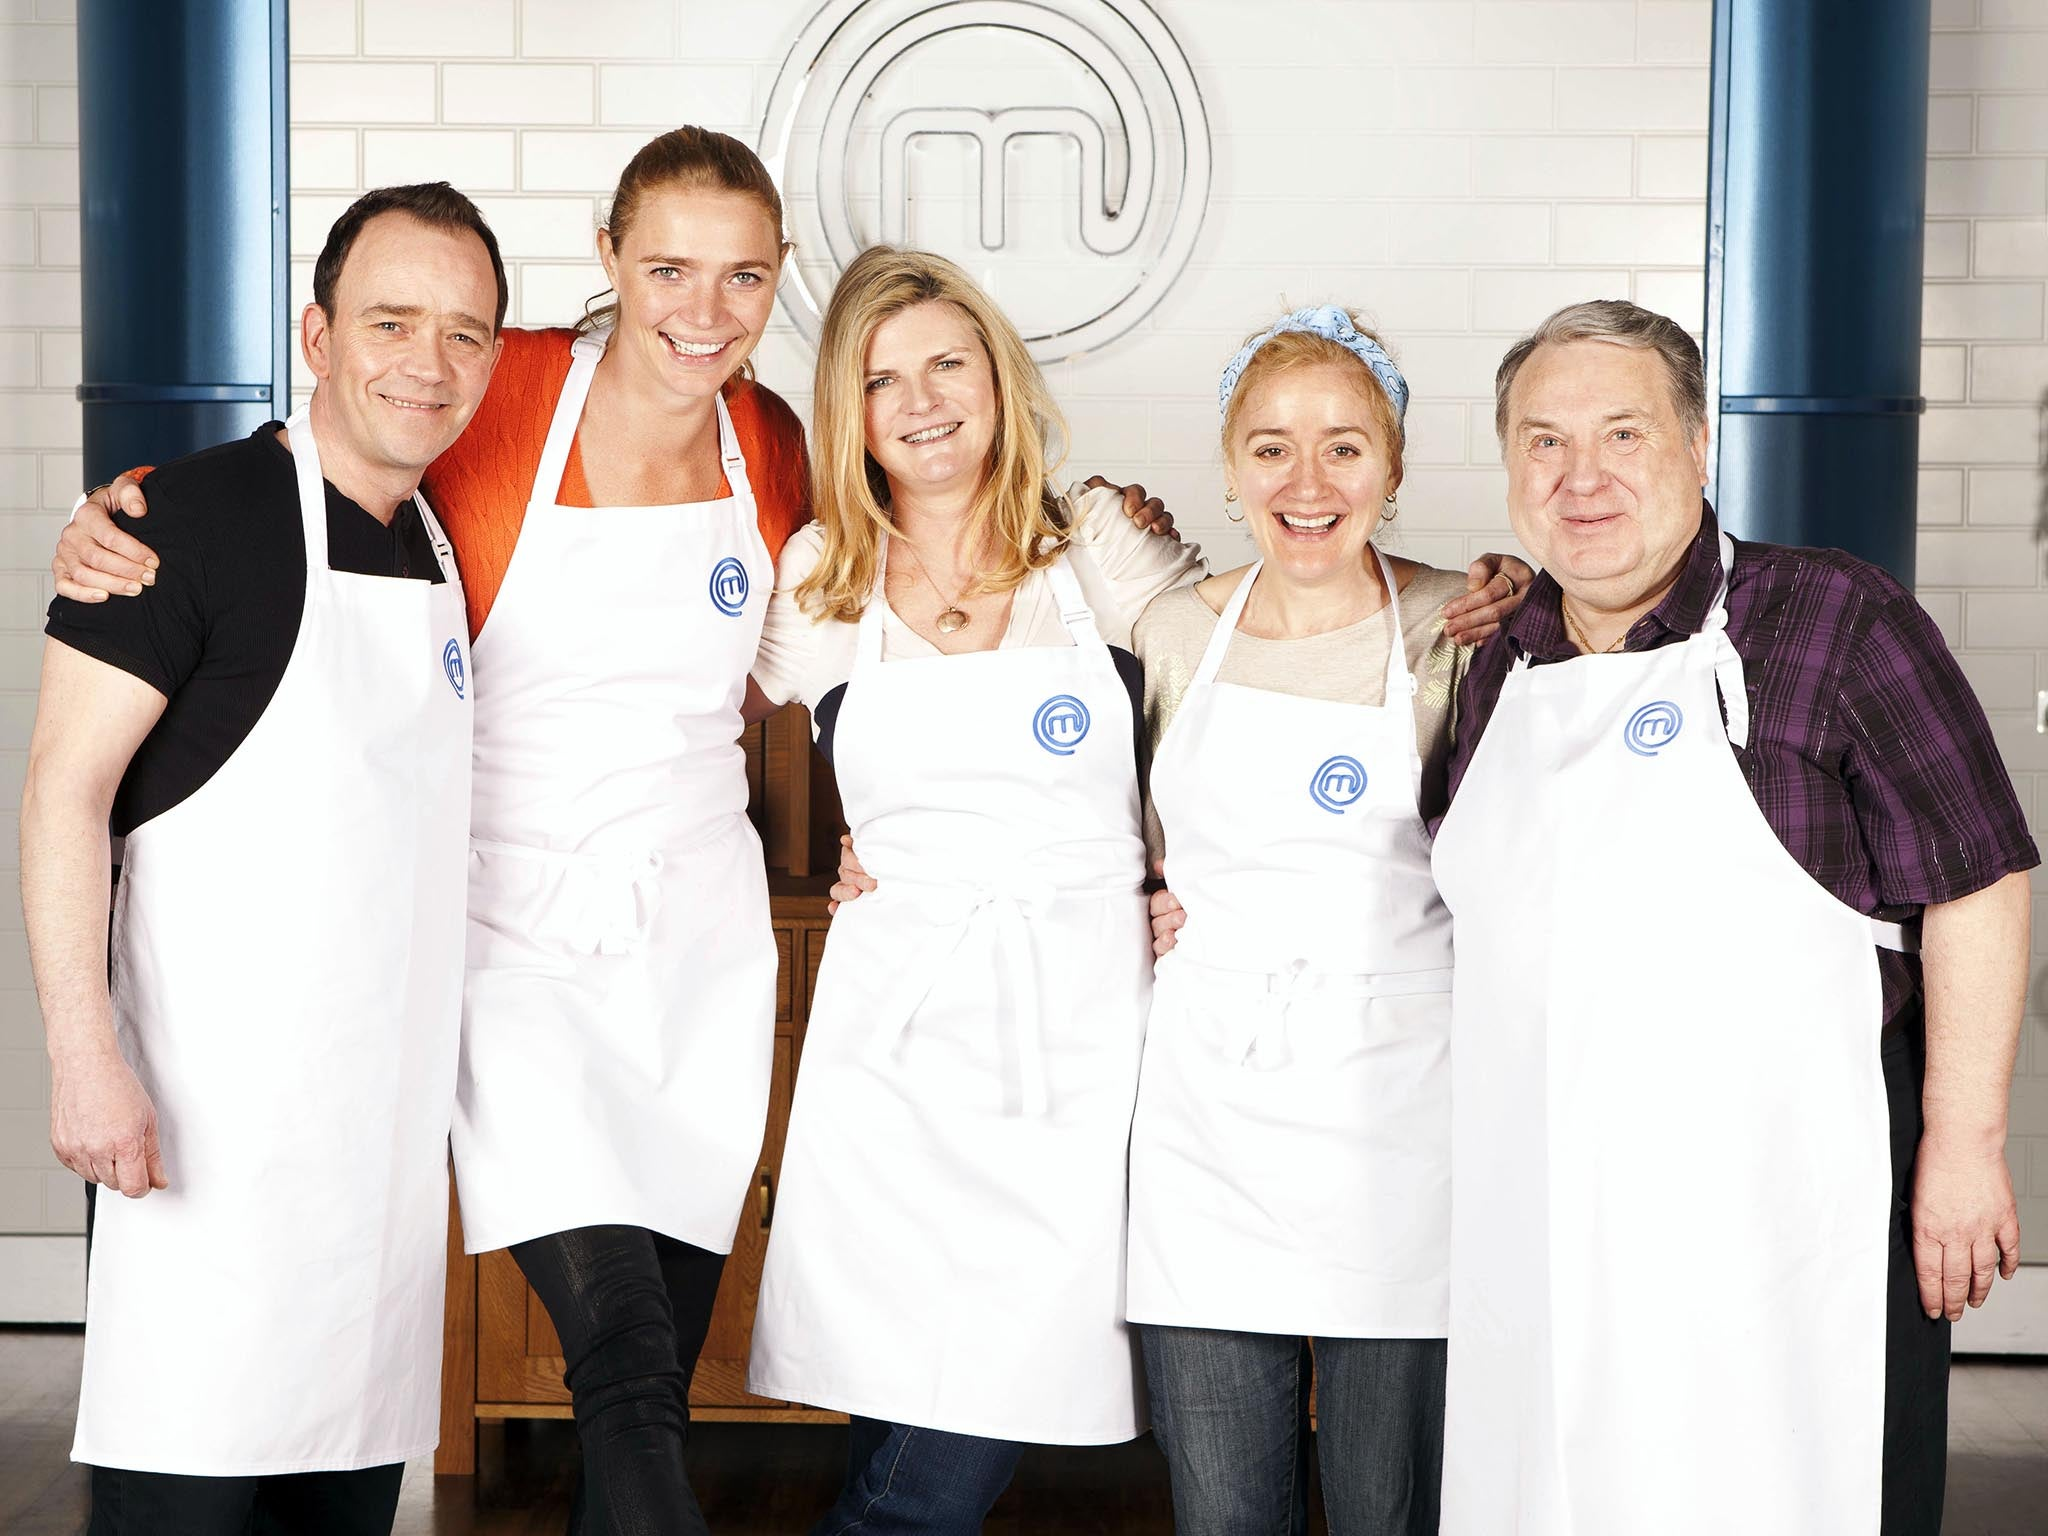 MasterChef 2019 - all the latest news from MasterChef UK